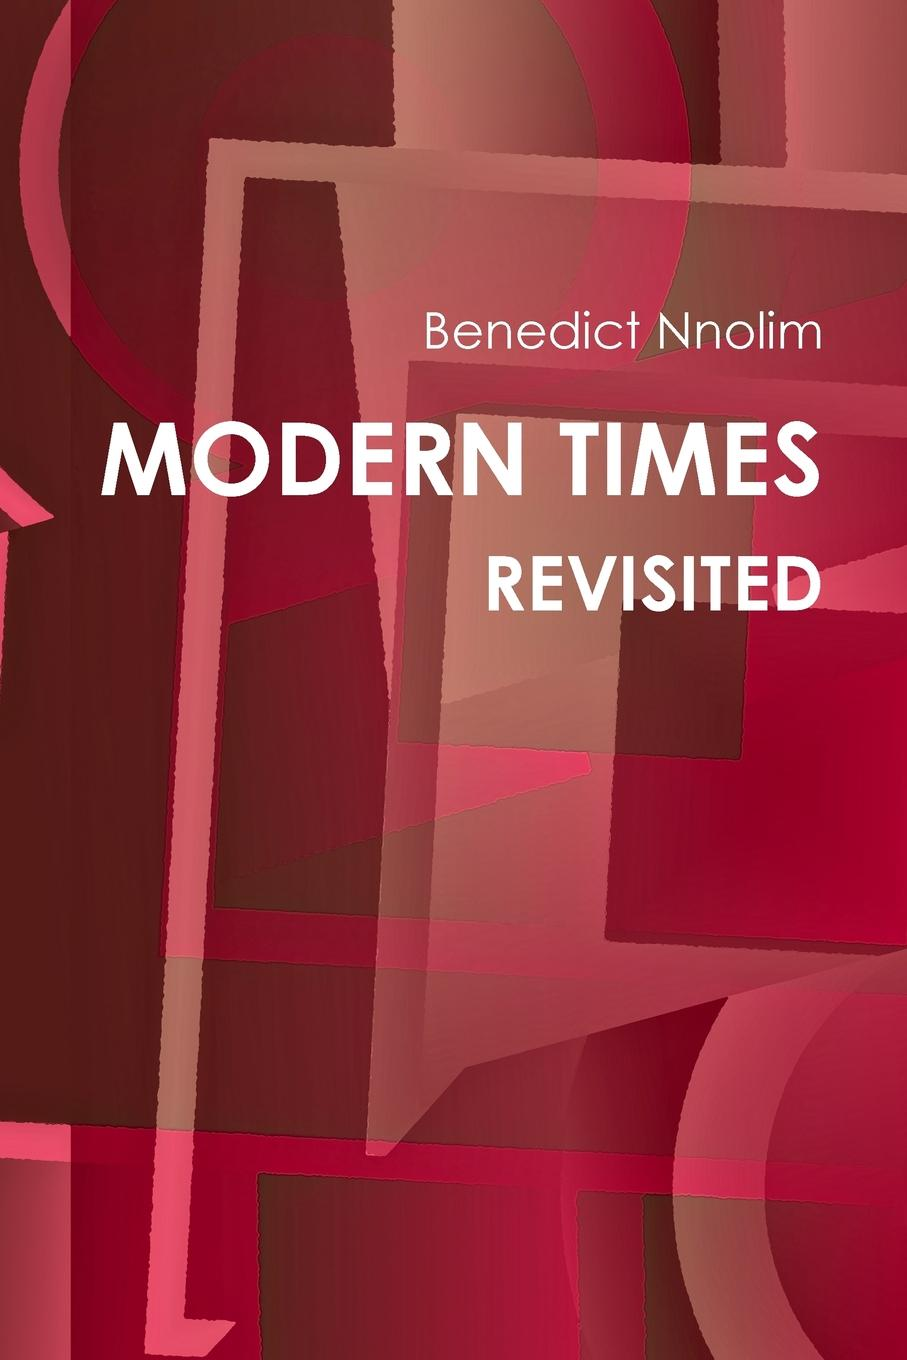 Benedict Nnolim MODERN TIMES REVISITED jd mcpherson jd mcpherson let the good times roll